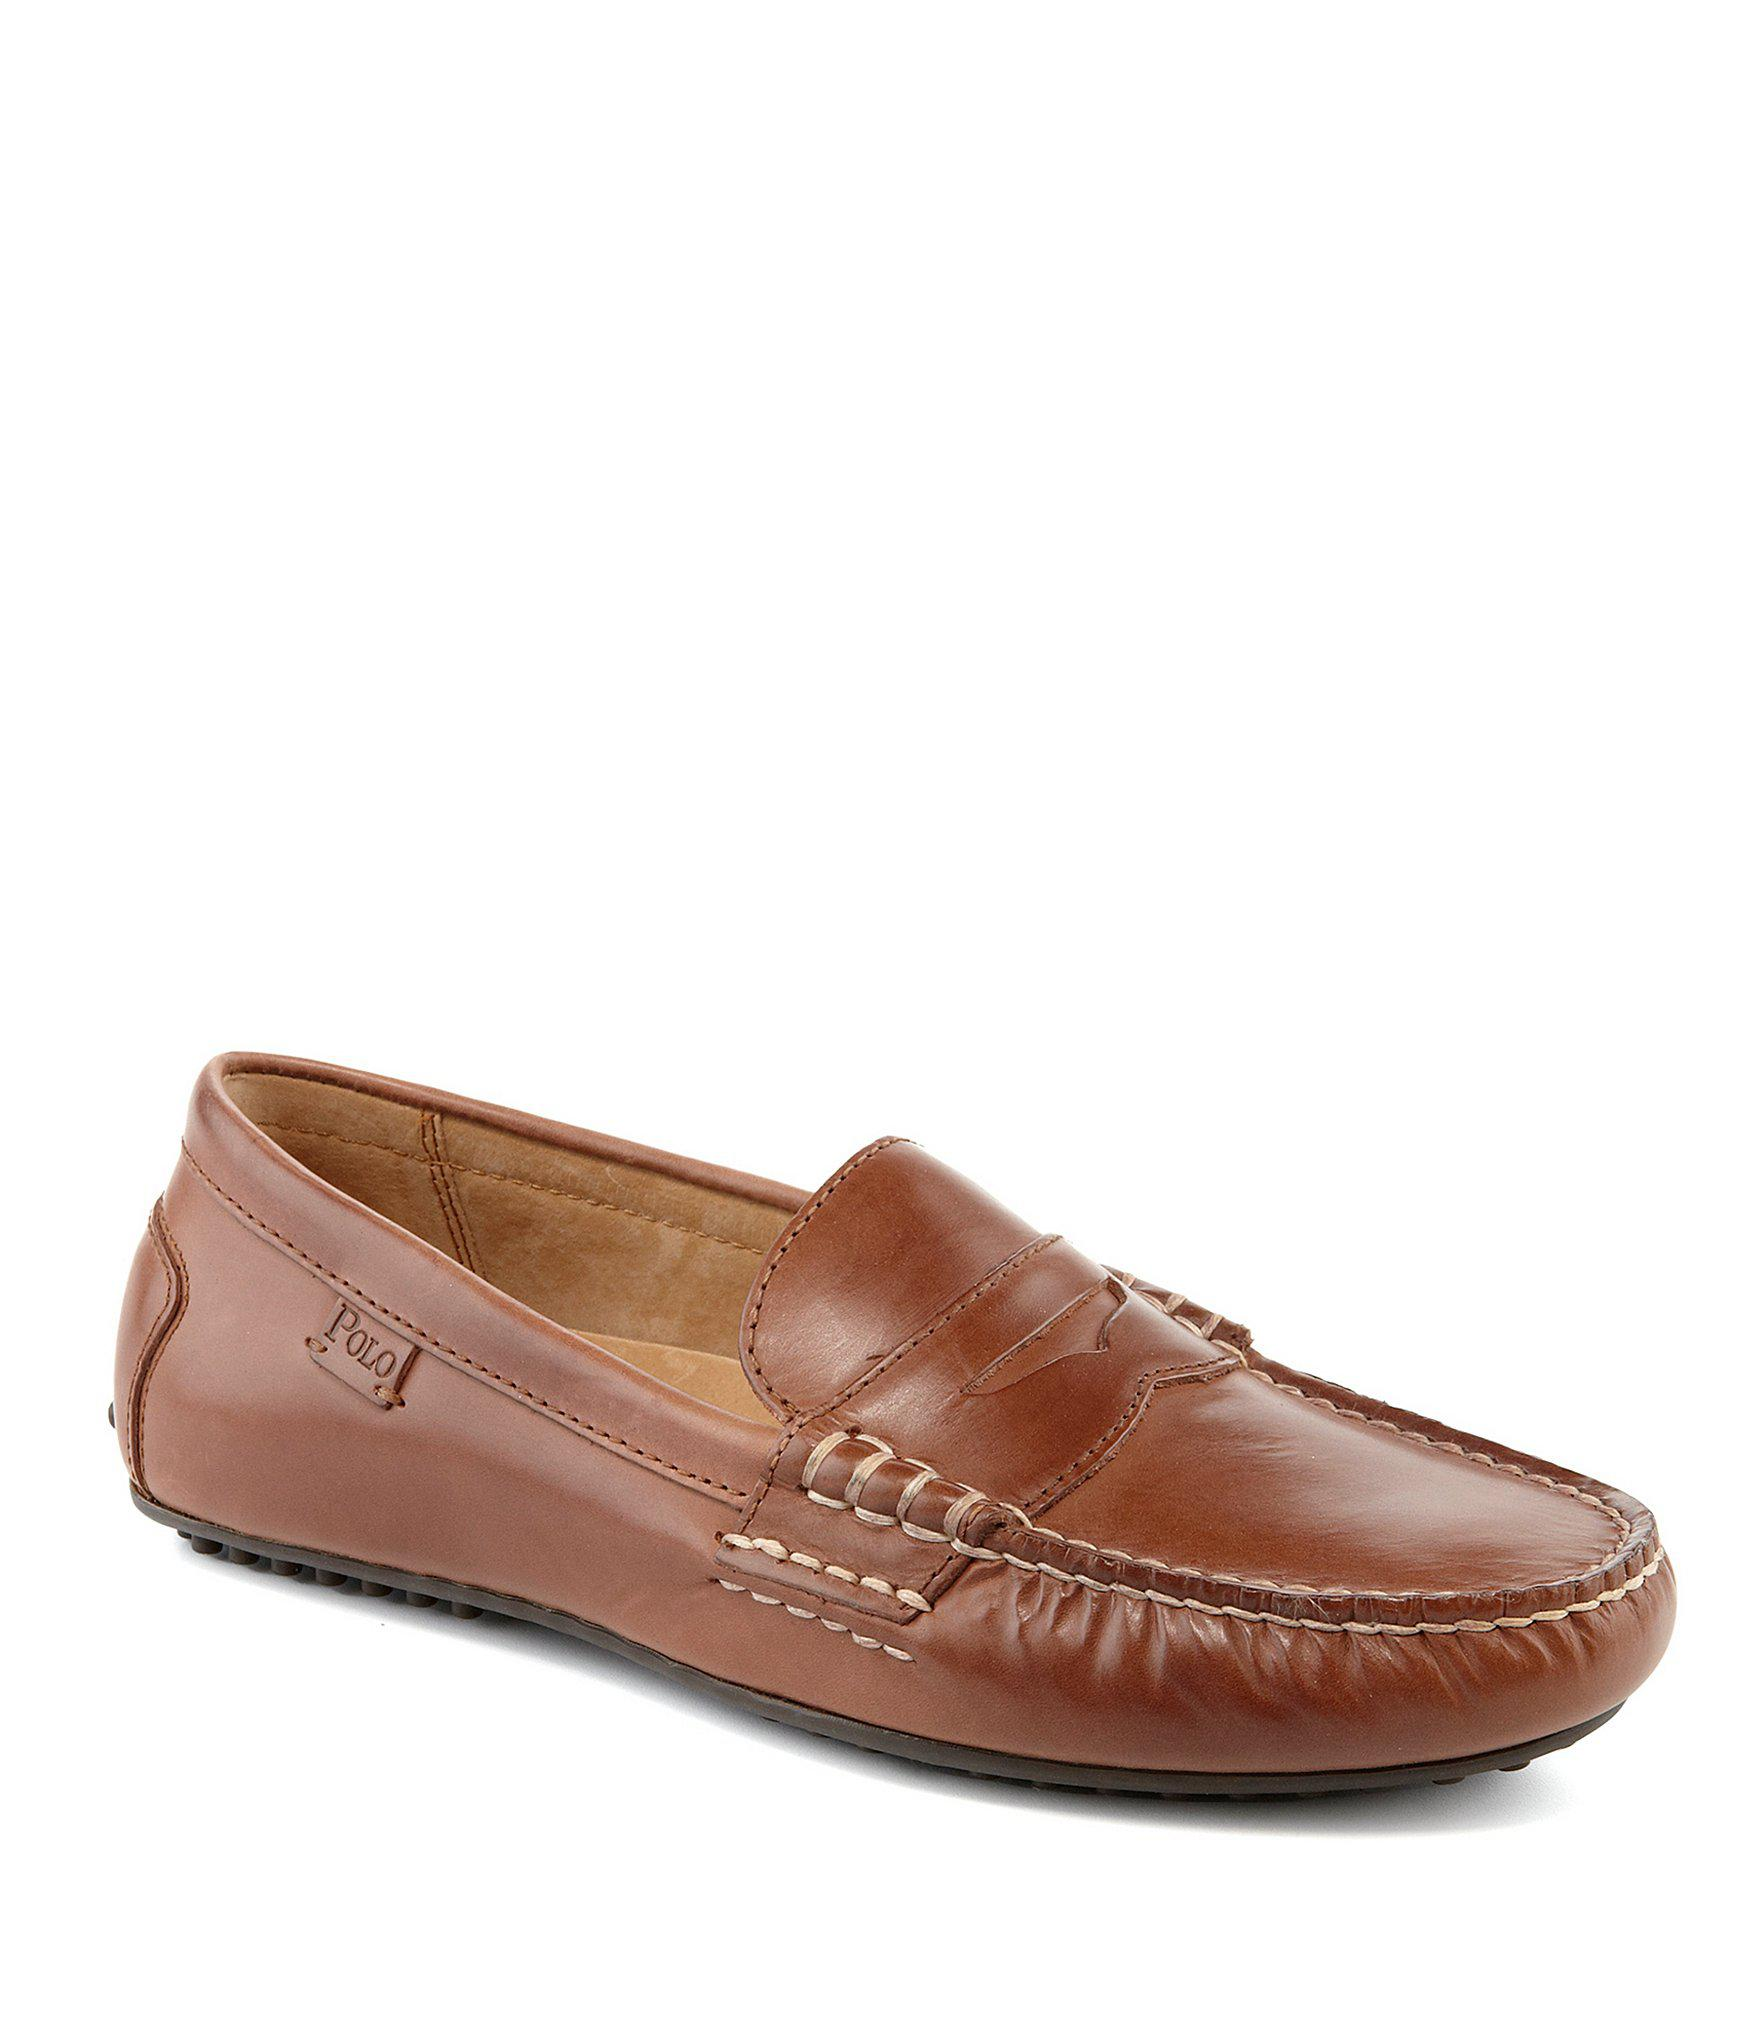 7639206cf84 Lyst - Polo Ralph Lauren Wes Penny Loafers in Brown for Men